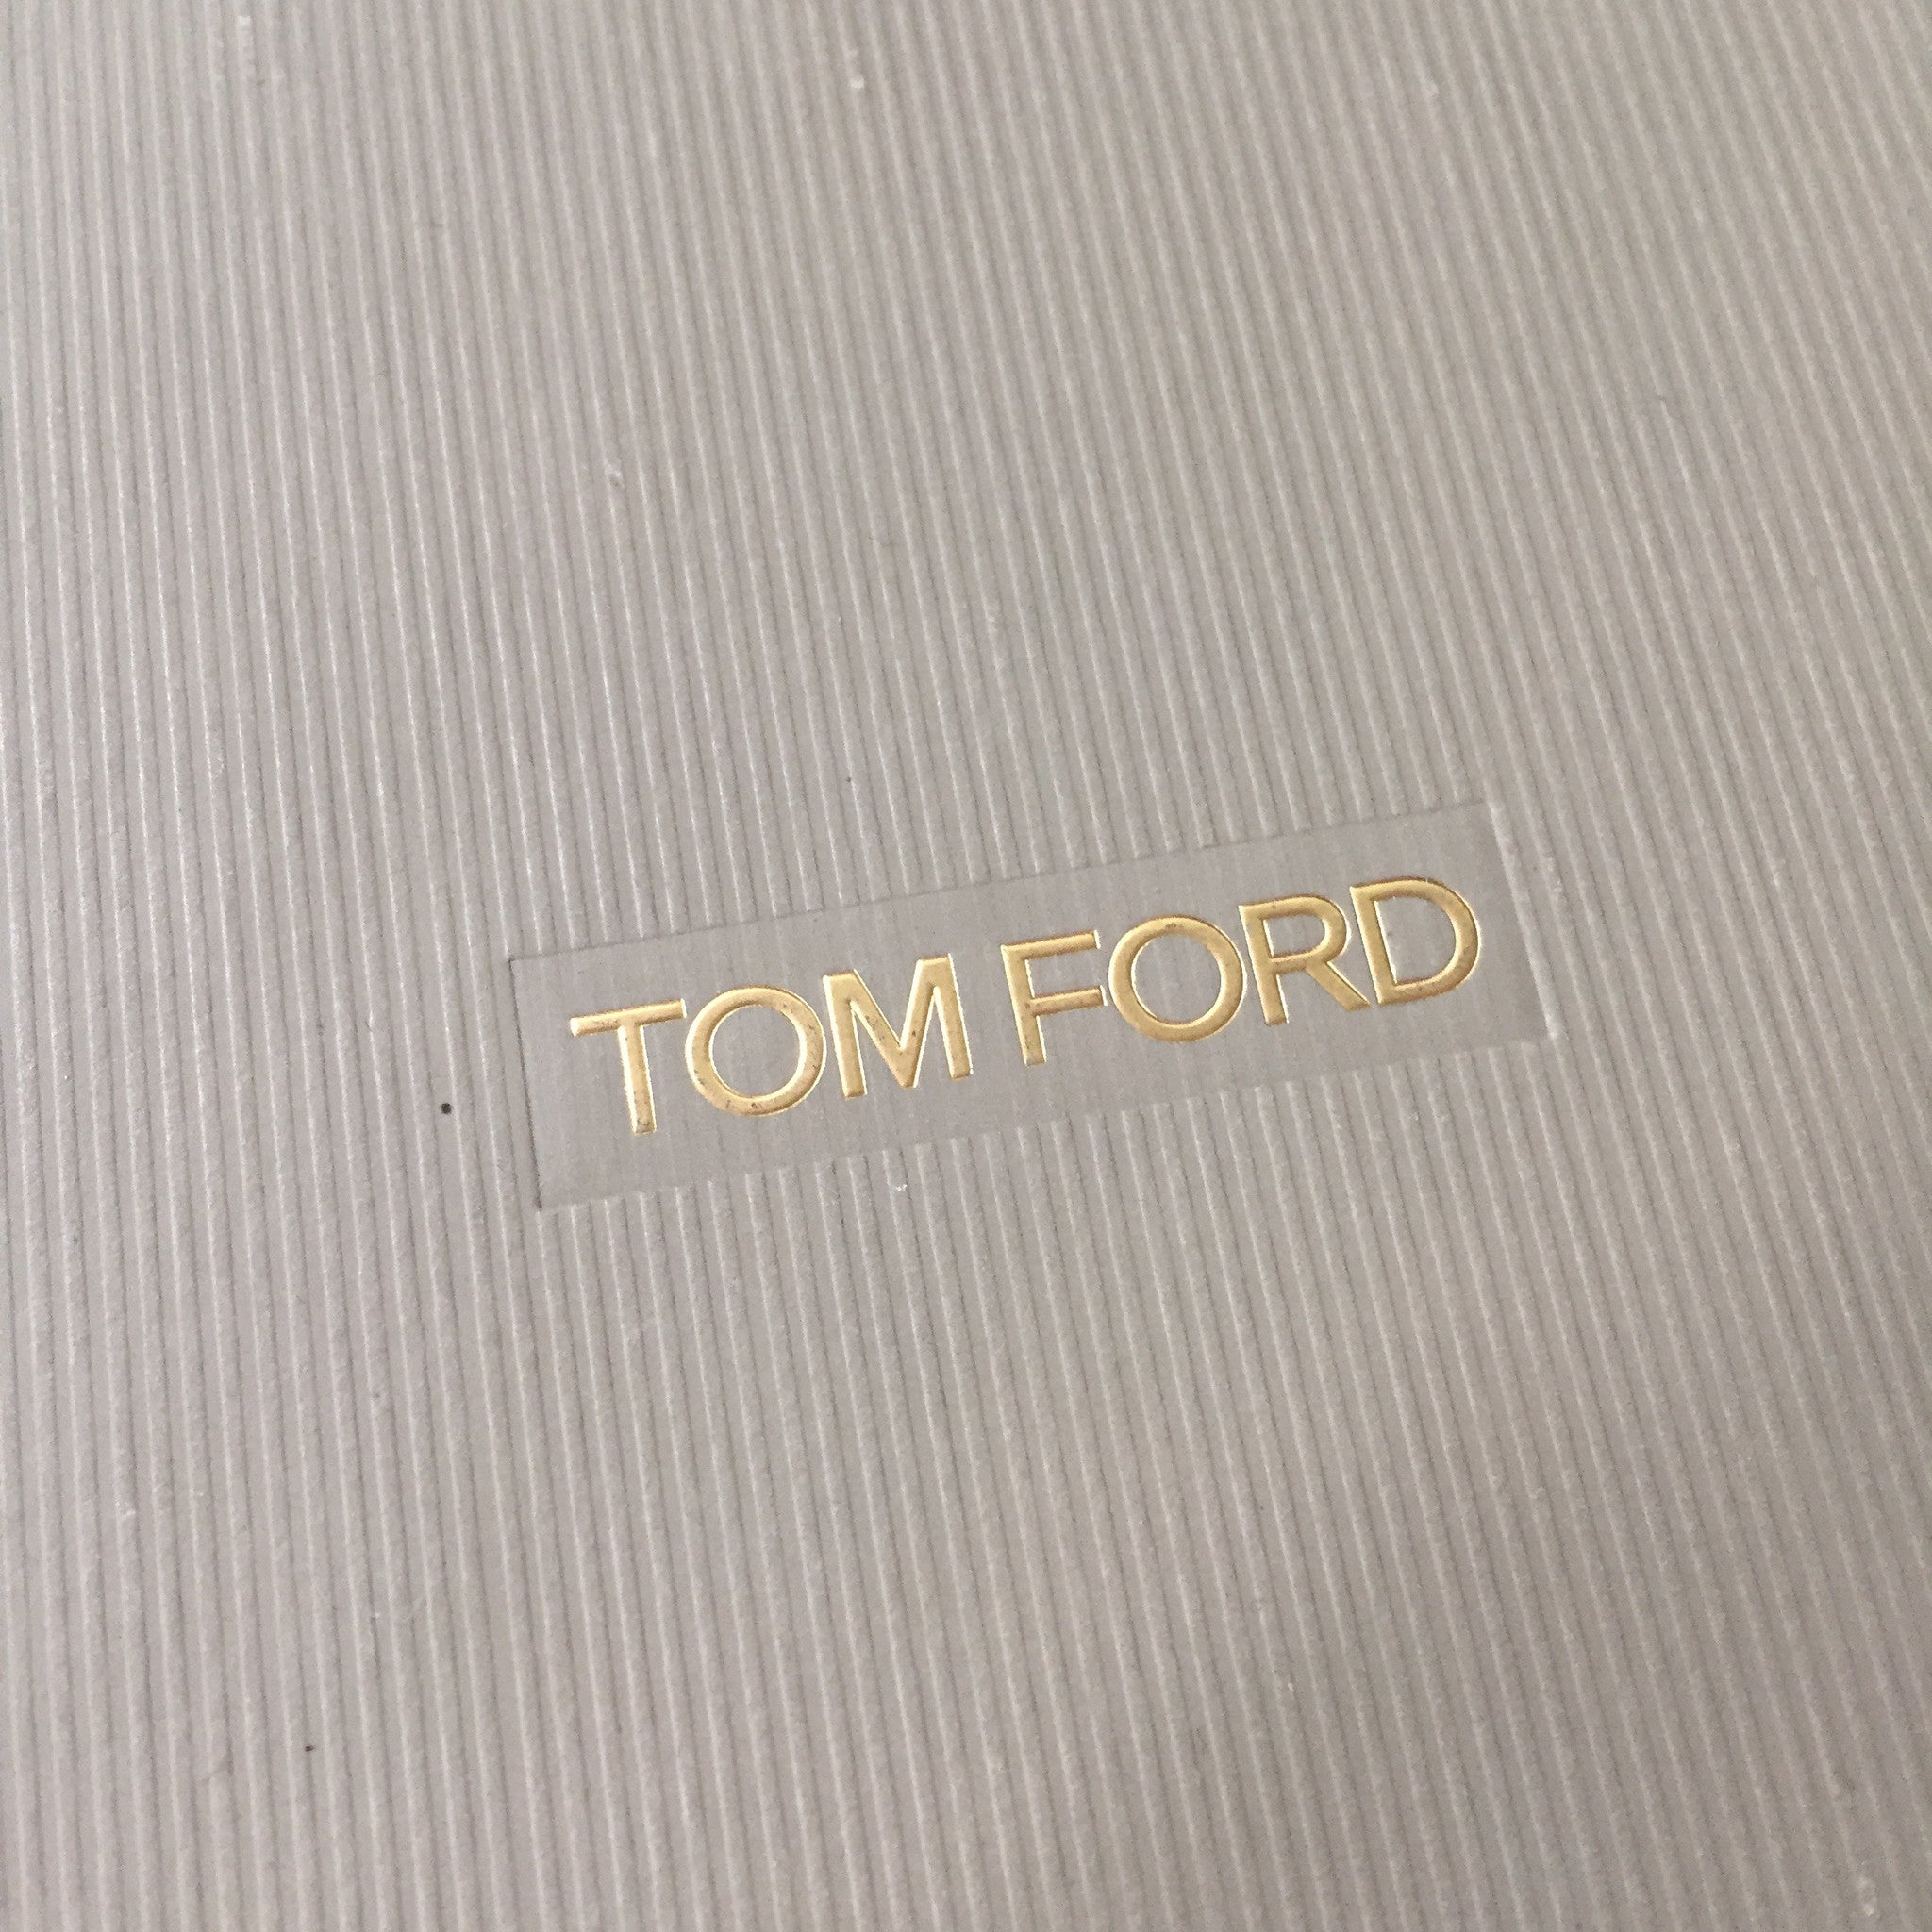 Tom Ford - Gold Feather Pendant Chain Necklace